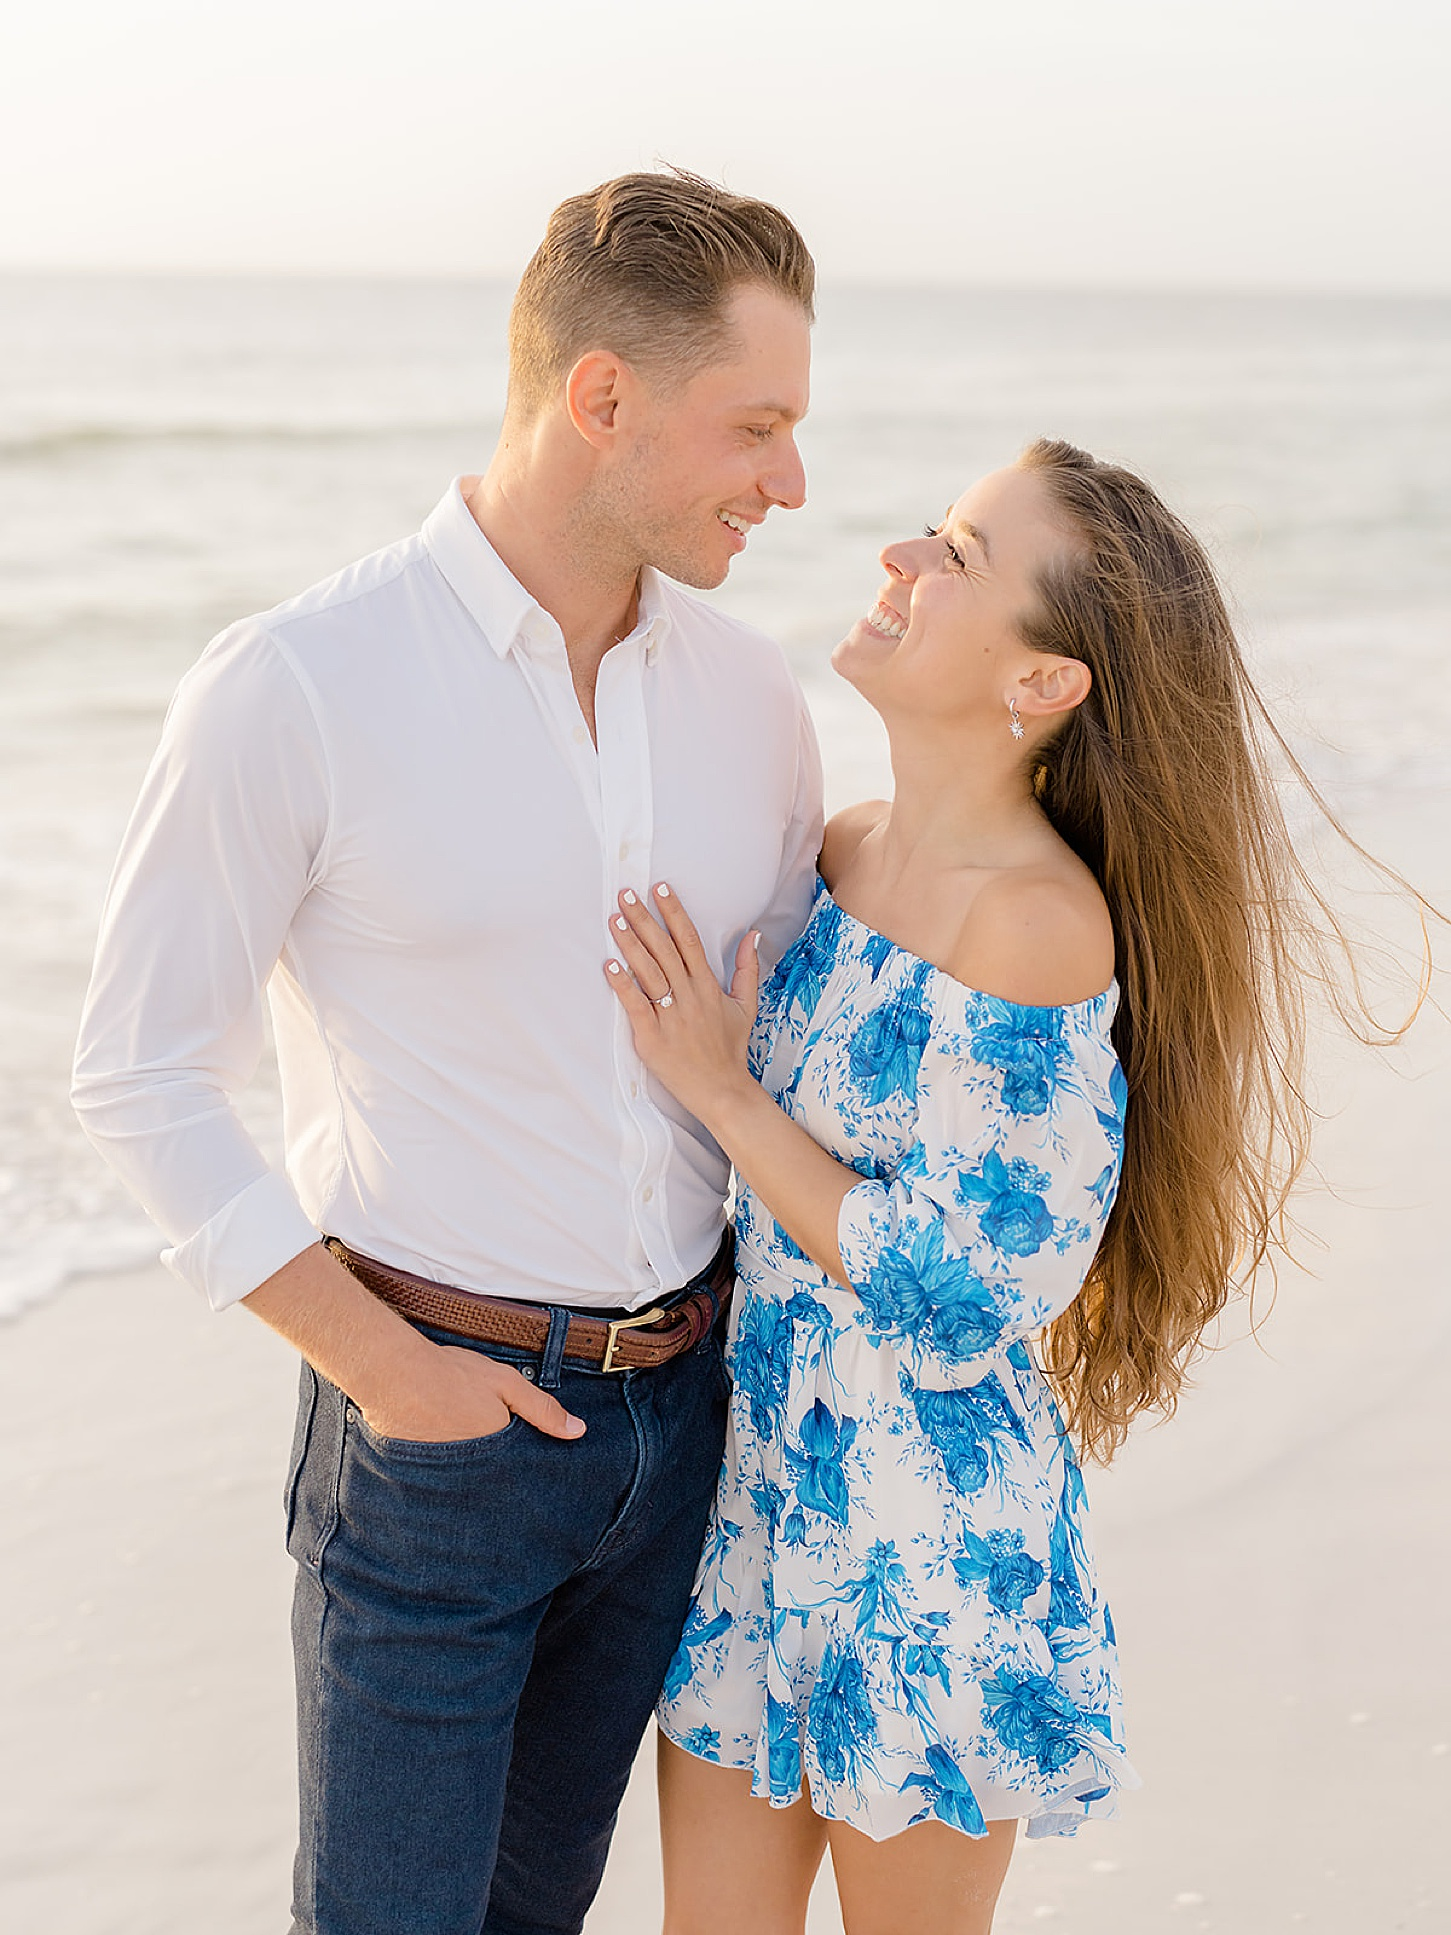 Palm Beach Florida Engagement Photography by Magdalena Studios Lyn and Paul 0021